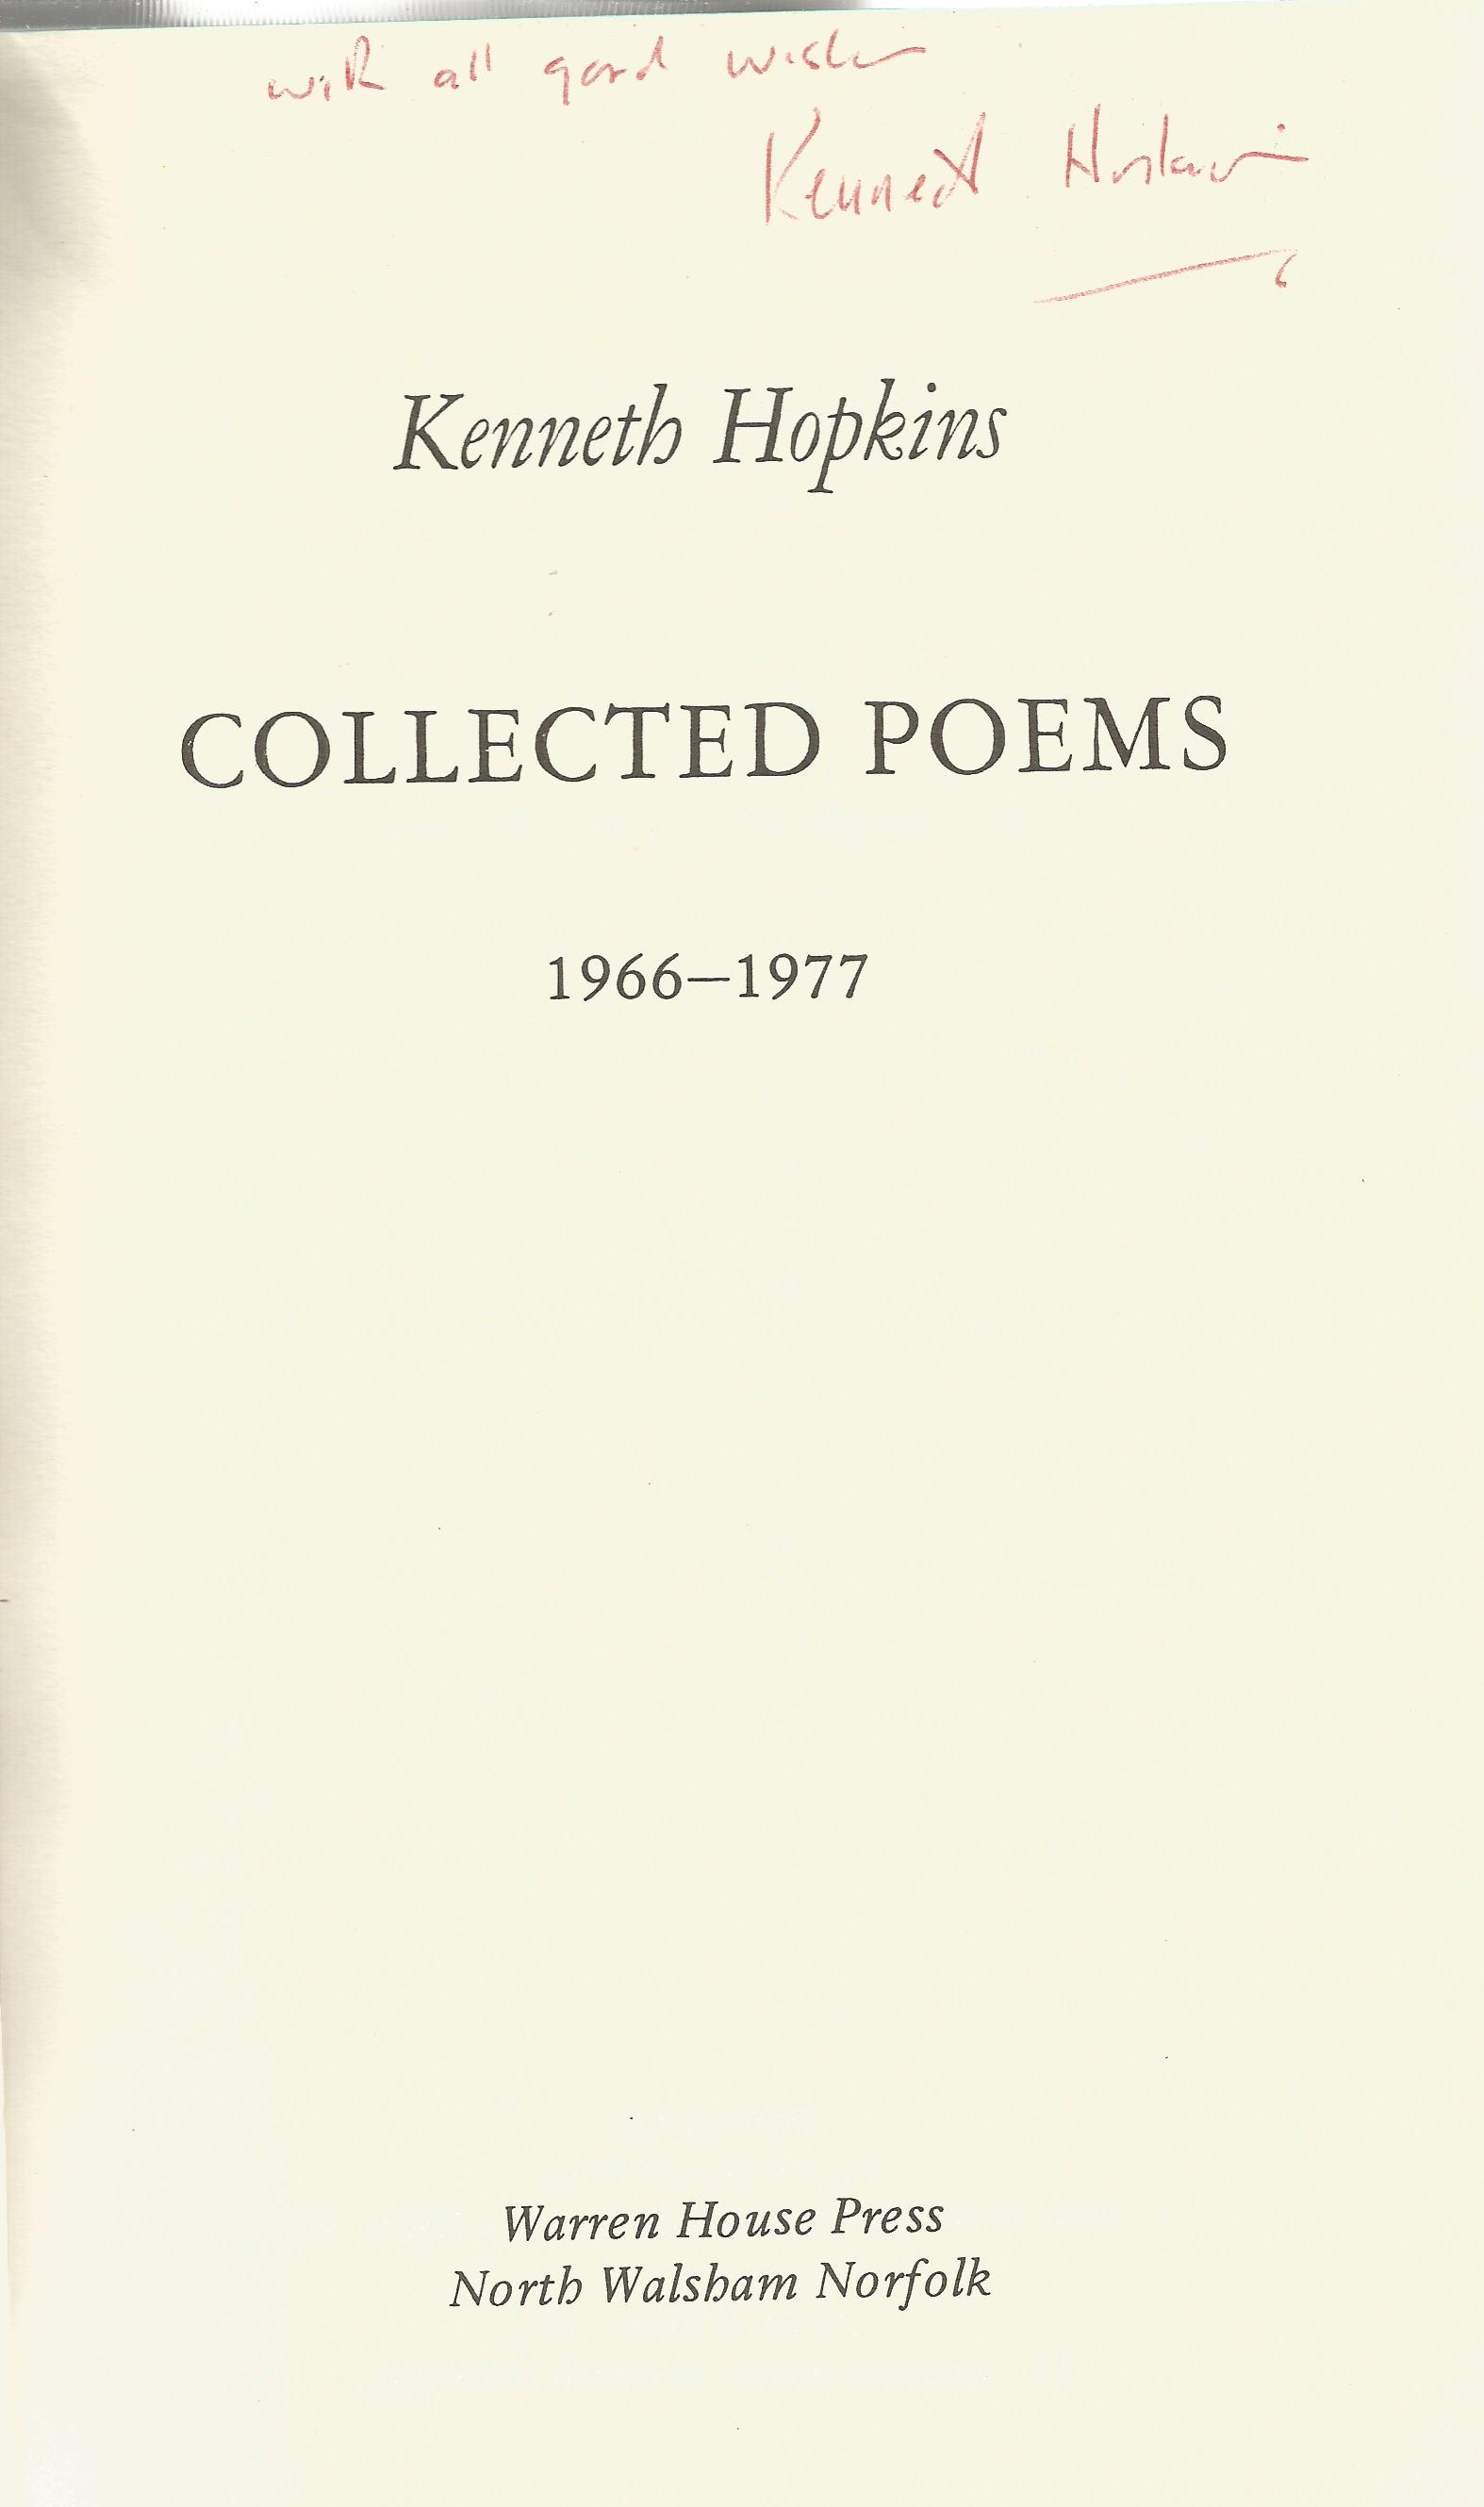 Kenneth Hopkins Hardback Book Collected Poems signed by the Author on the Title Page First Edition - Image 3 of 3